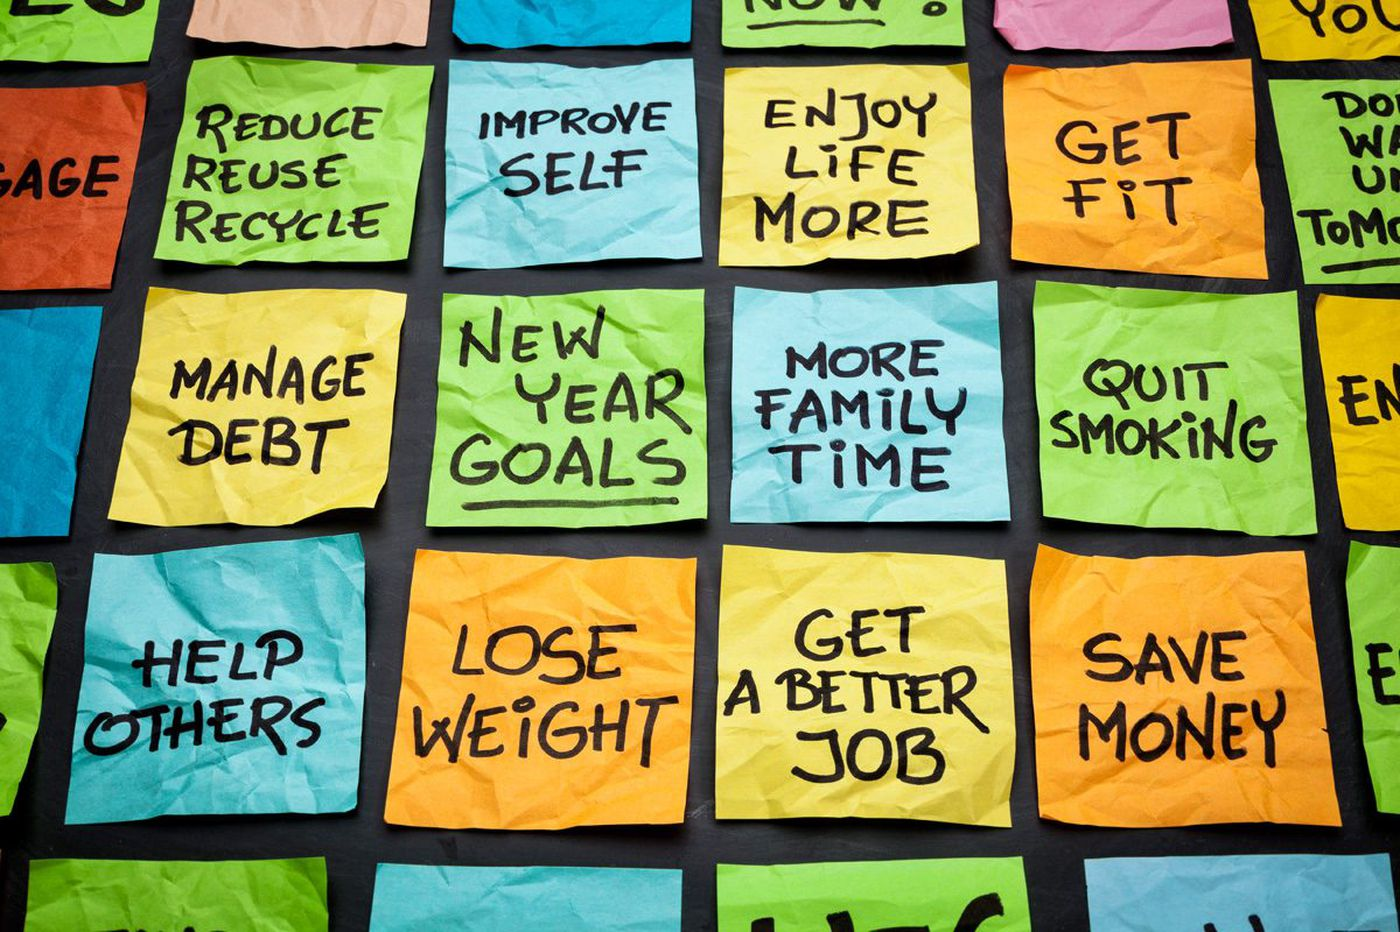 How to make a New Year's resolution that will actually work